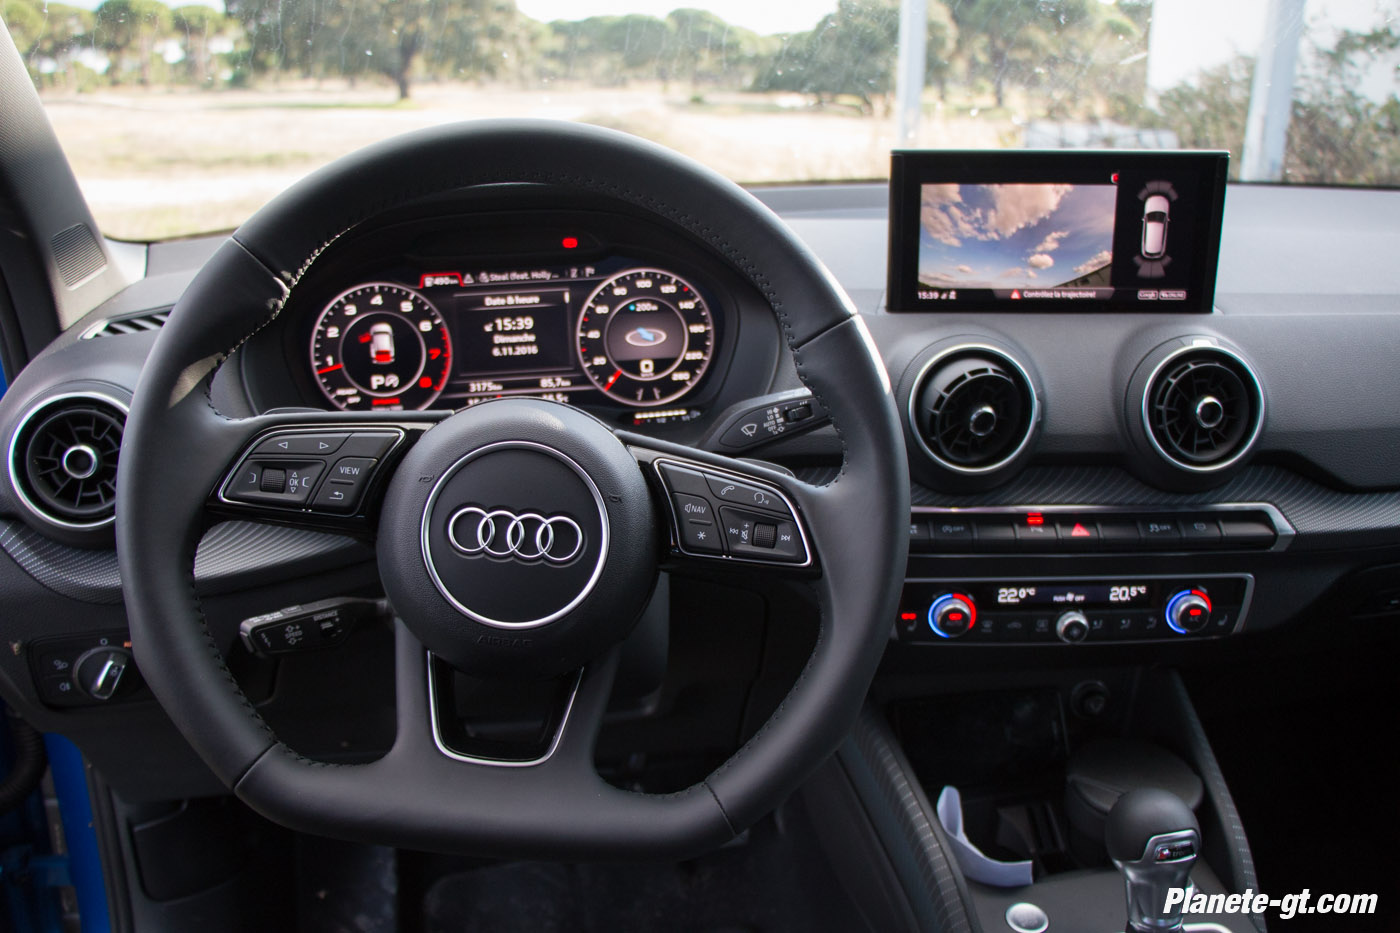 essai video audi q2 interieur virtual cockpit 20 plan te. Black Bedroom Furniture Sets. Home Design Ideas